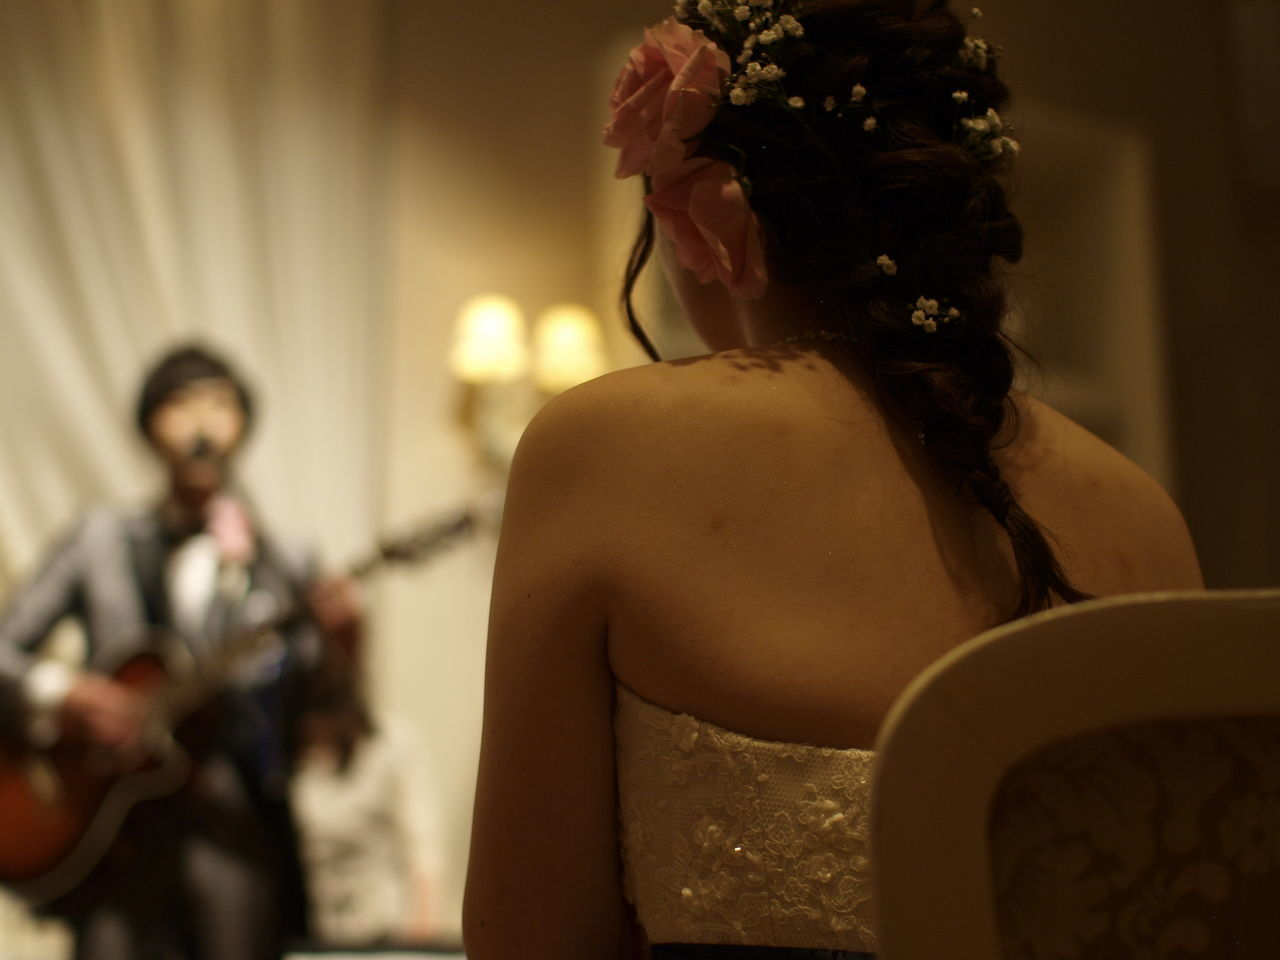 Band Bridal Can You Marry Me Fine Day Guitar Happy Japan Love Marriage  Married Music Party People Play The Music Songs Wedding Wedding Day Wedding Party